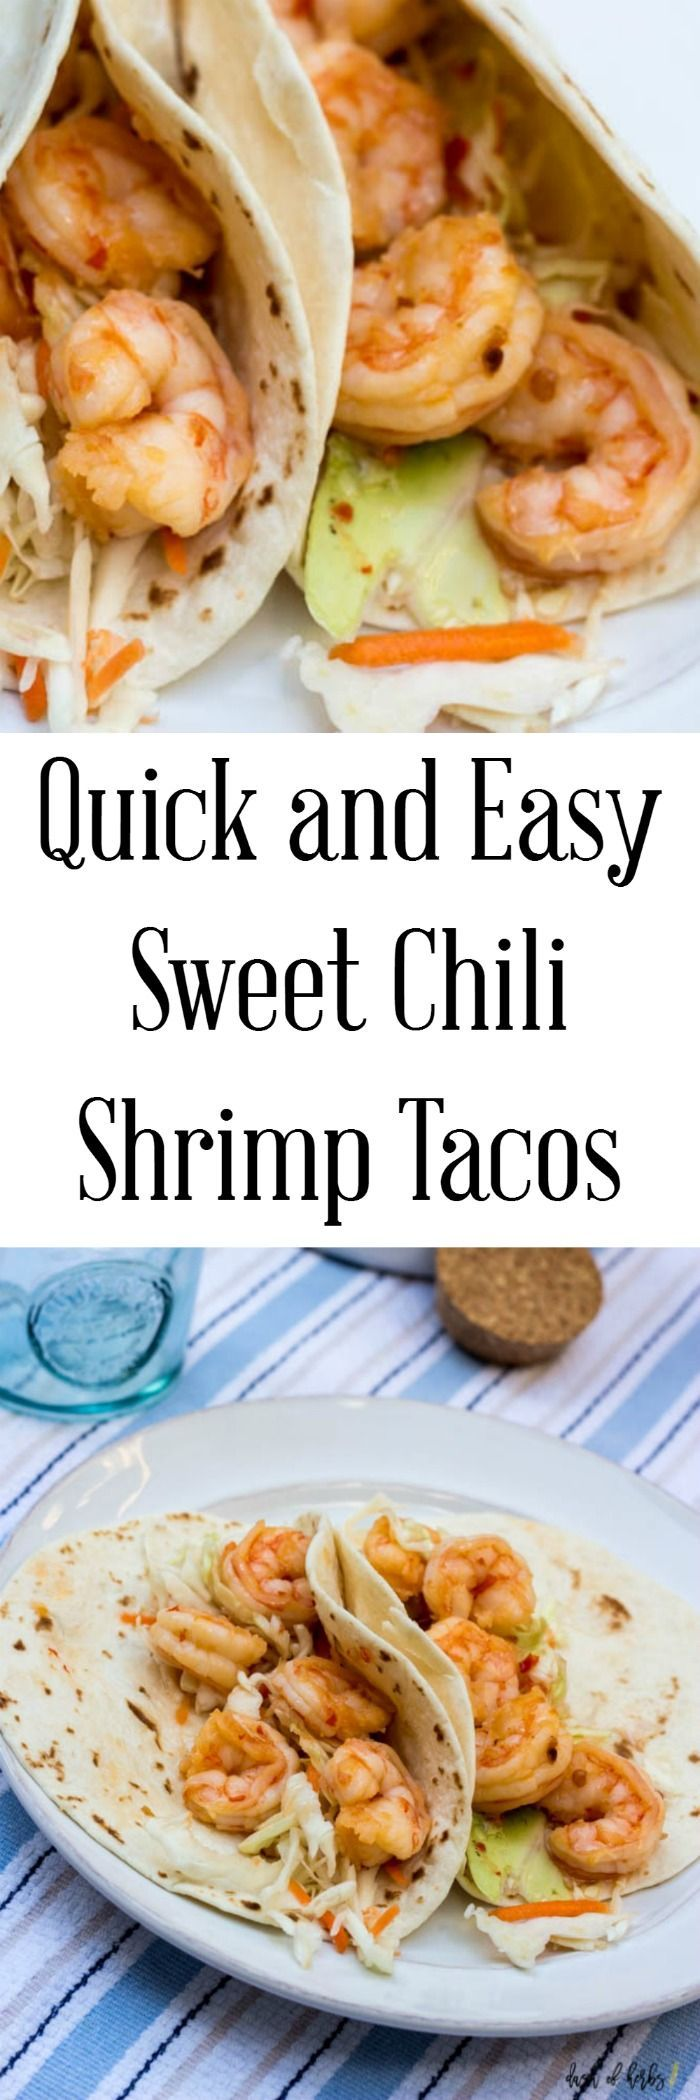 Quick and Easy Sweet Chili Shrimp Tacos - this recipe really is easy to make.  Just marinate and cook for about 15 minutes and you have a delicious recipe for your family to enjoy.